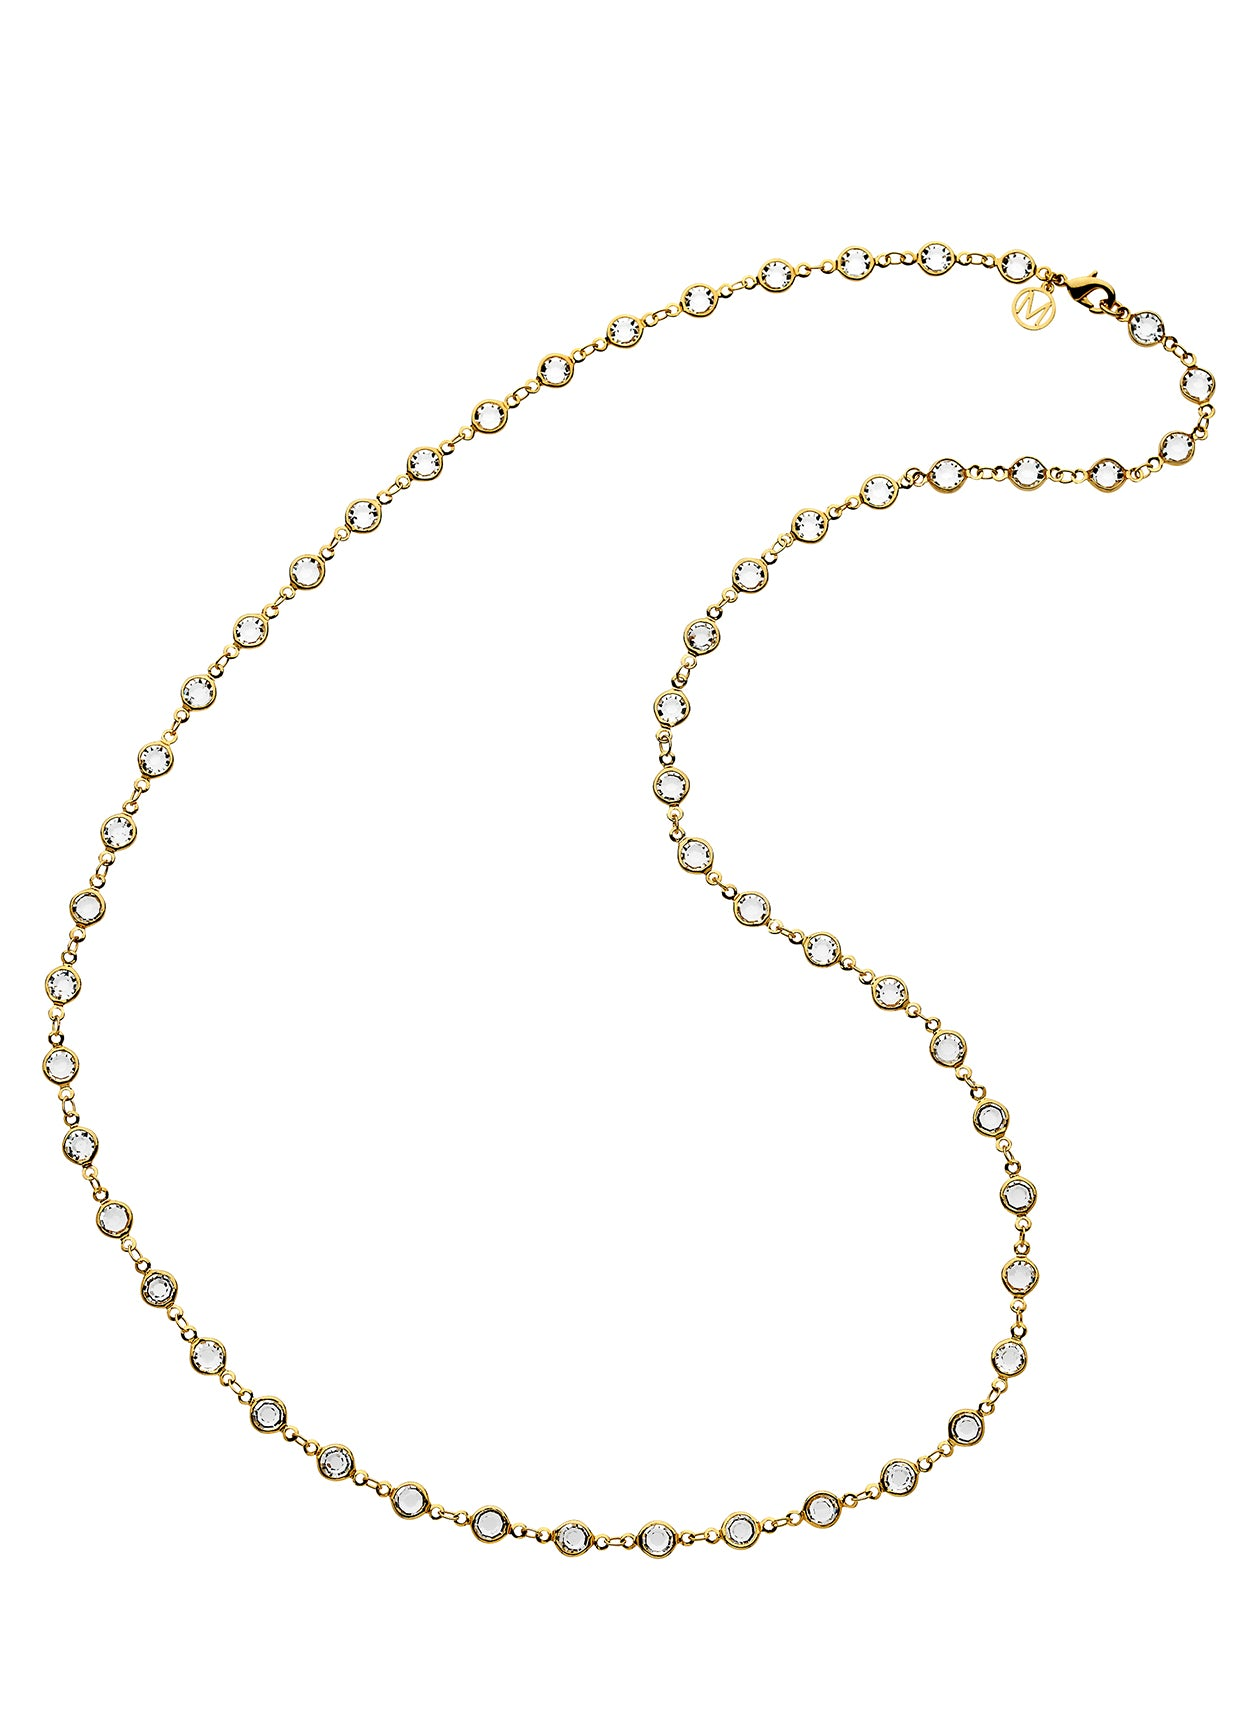 Gold Swarovski Crystal Chanel Long Chain Necklace